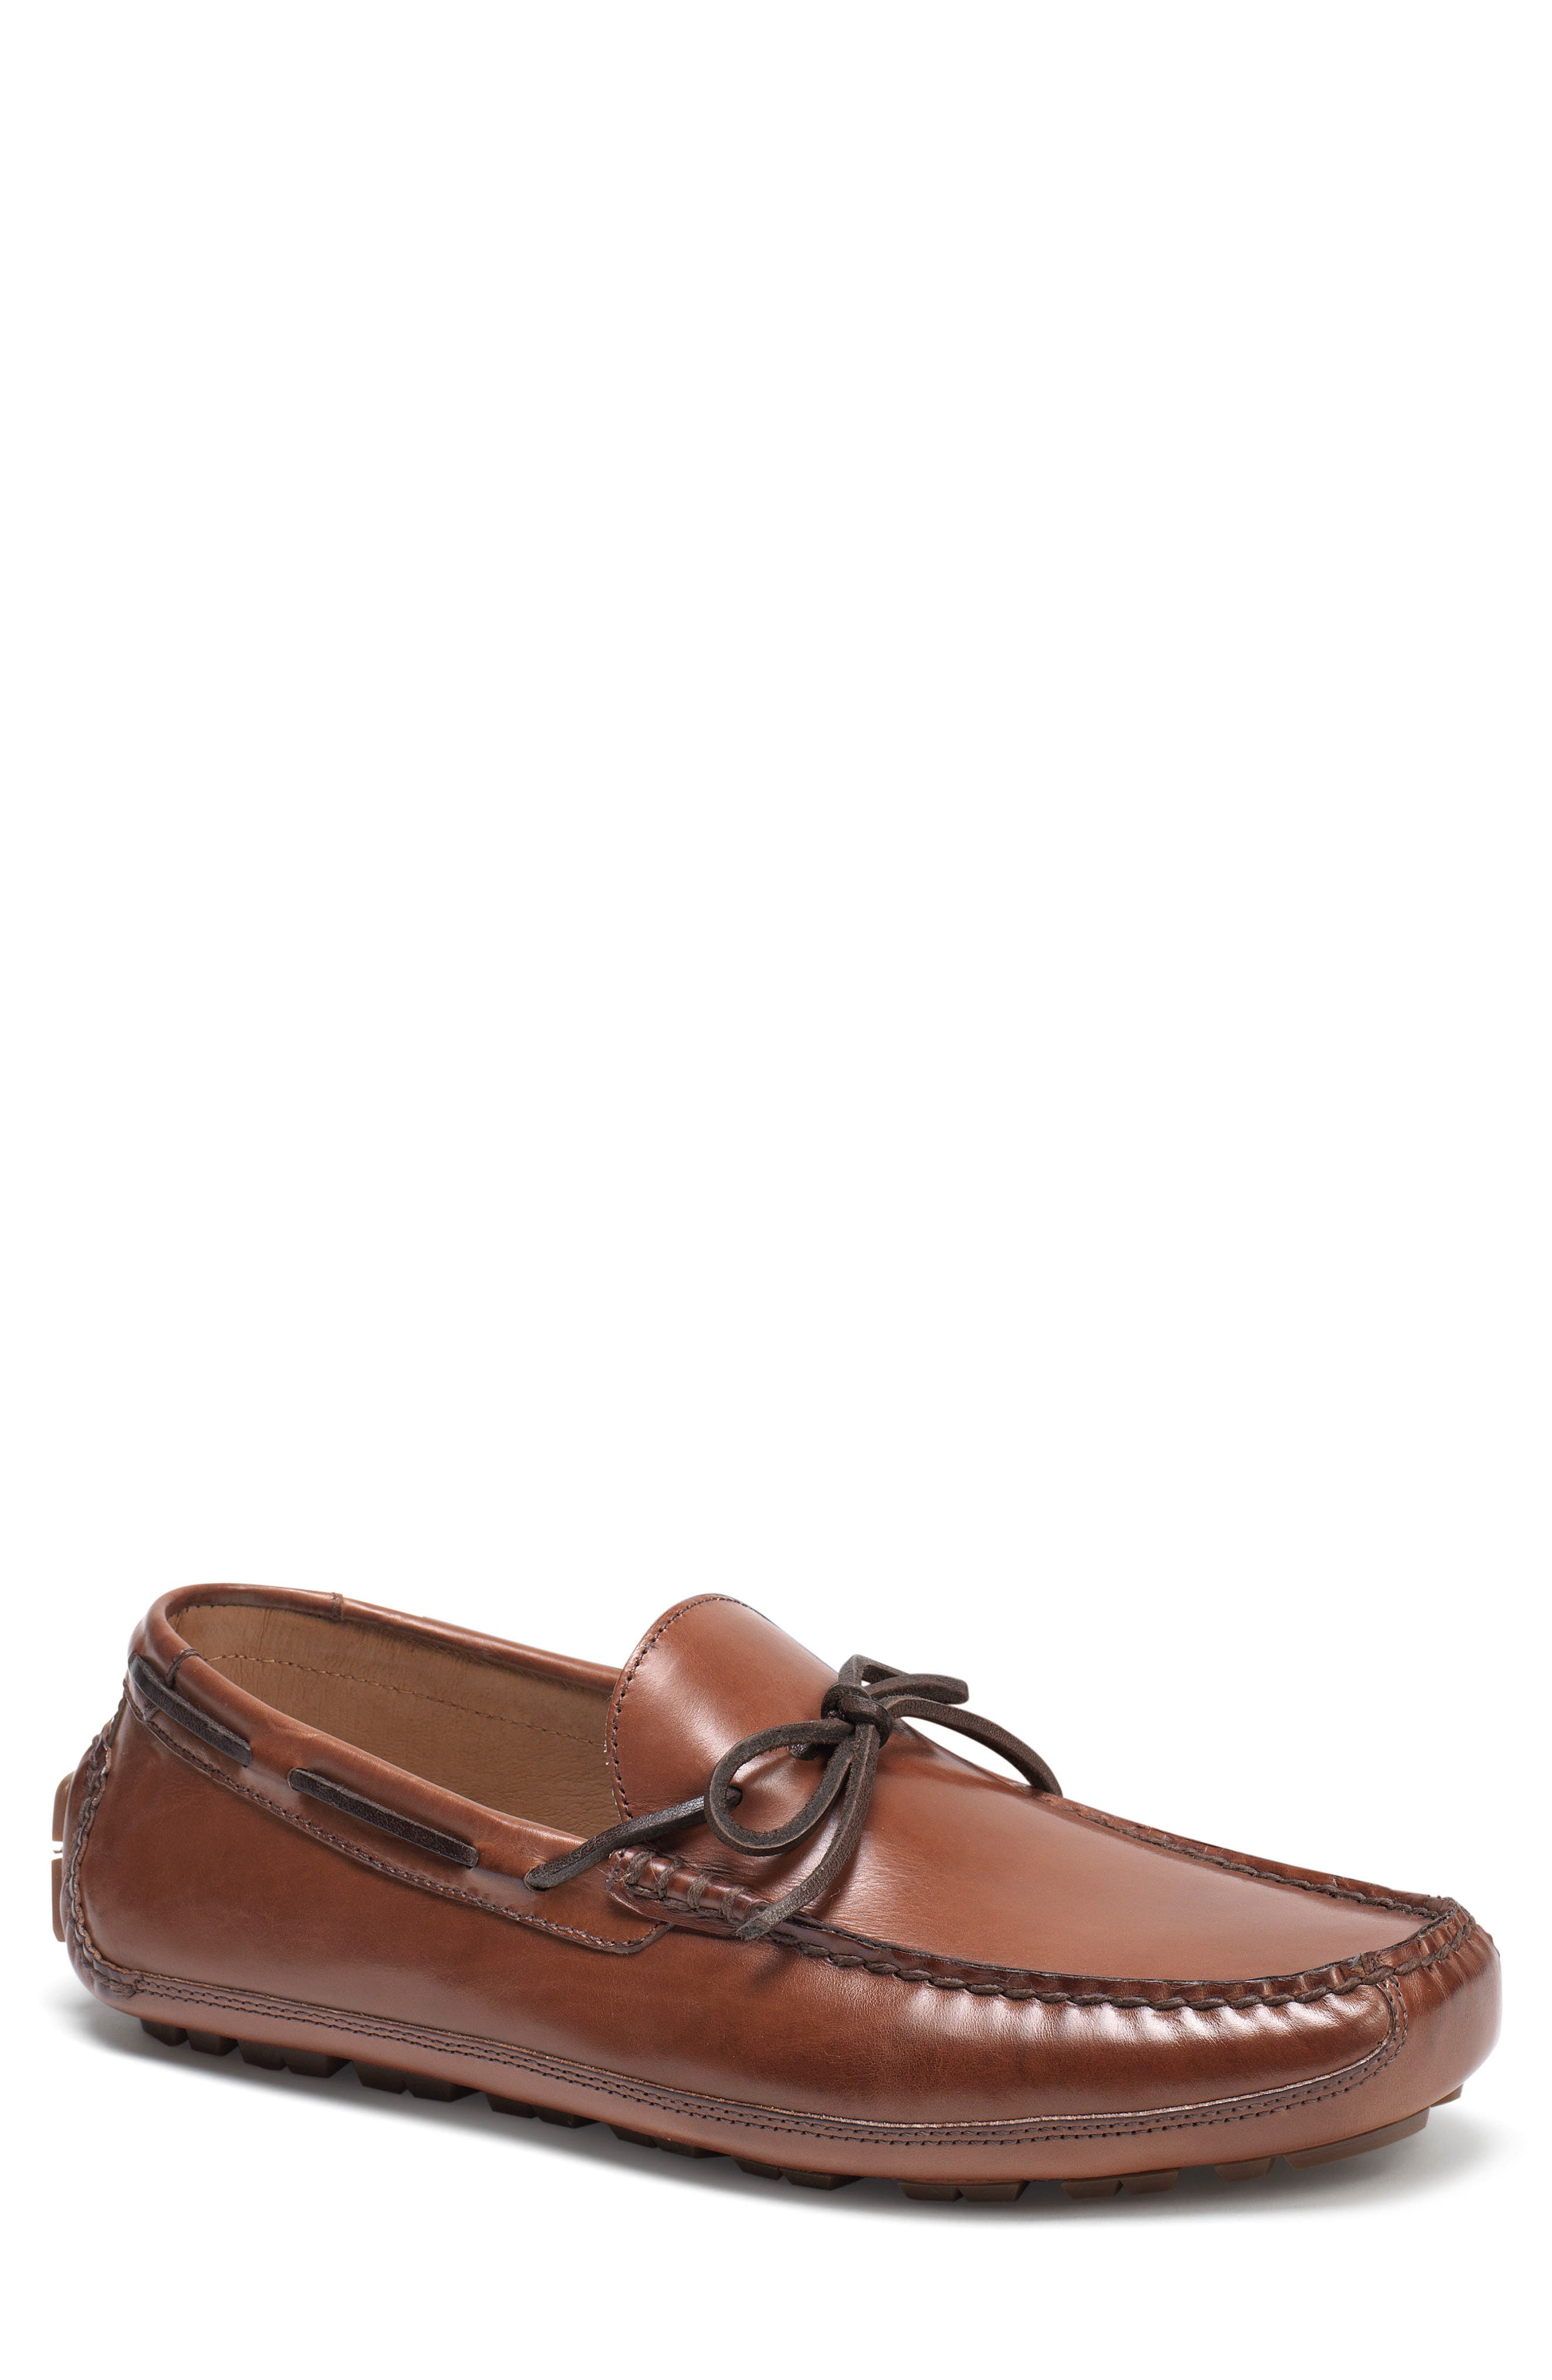 TRASK, Dillion Driving Loafer, Main thumbnail 1, color, BROWN LEATHER